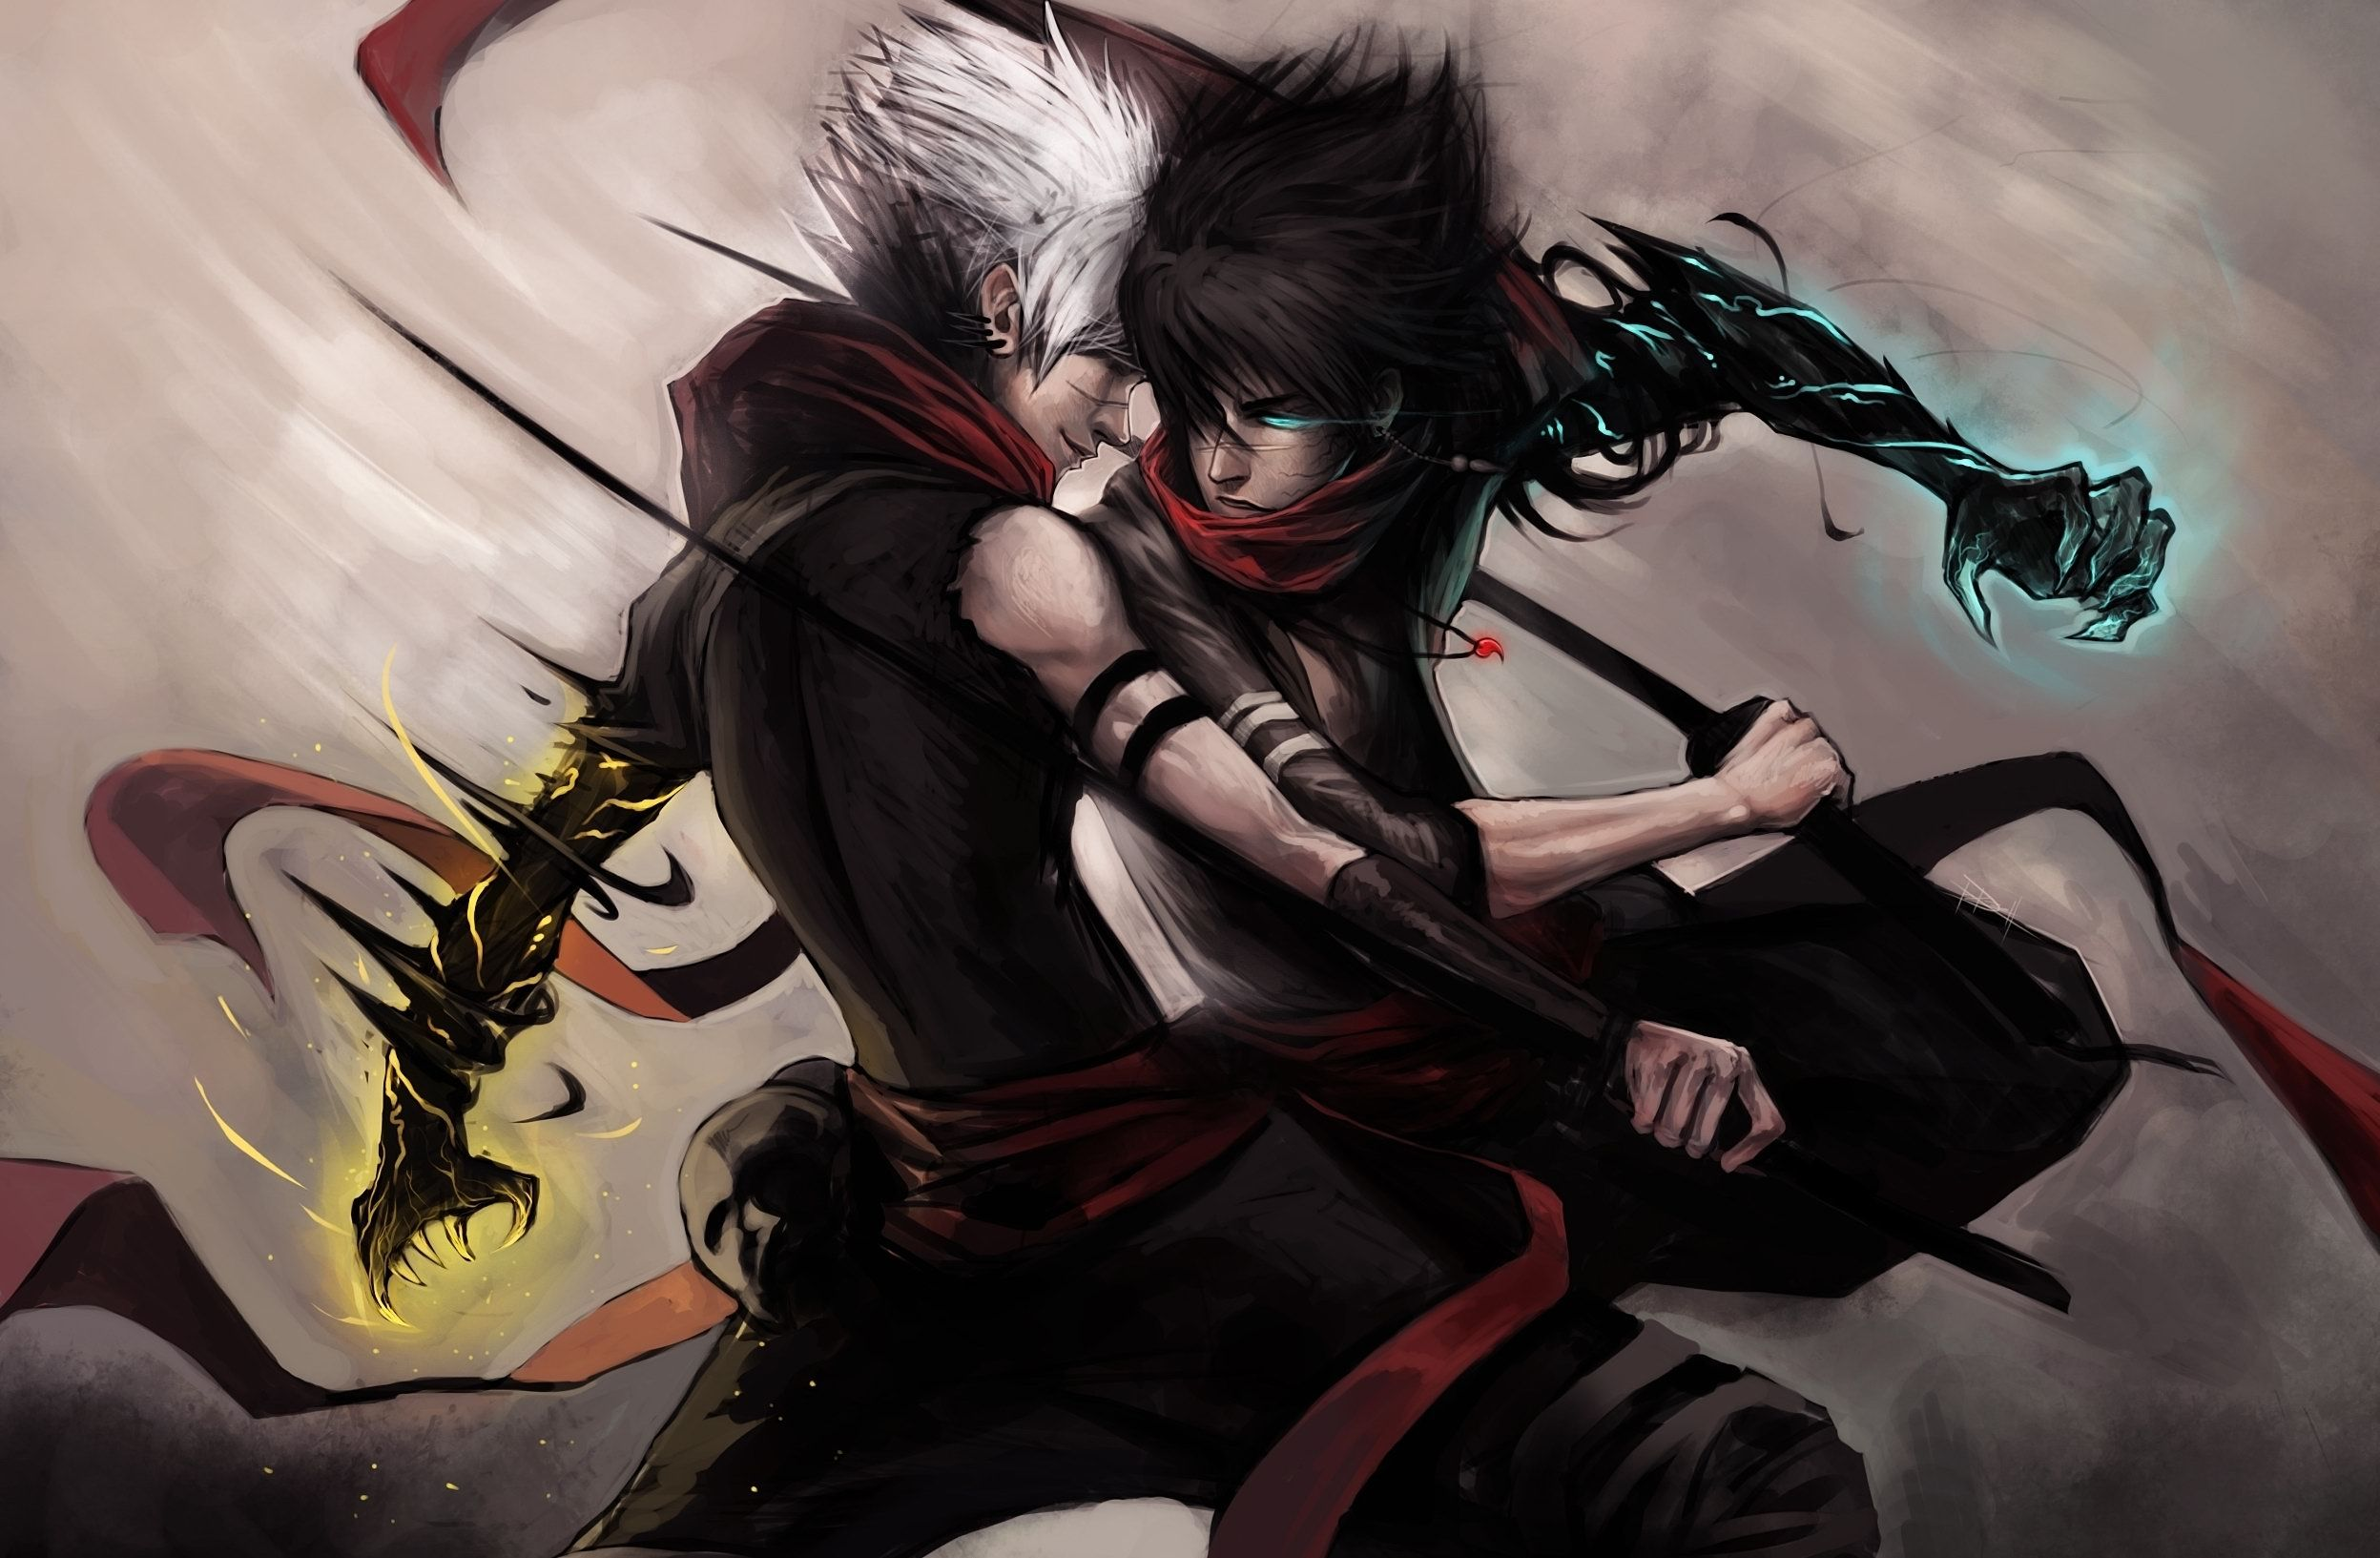 Viewallpapers Com Best Hd Wallpapers High Resolution Pictures Anime Warrior Anime Fight Awesome Anime